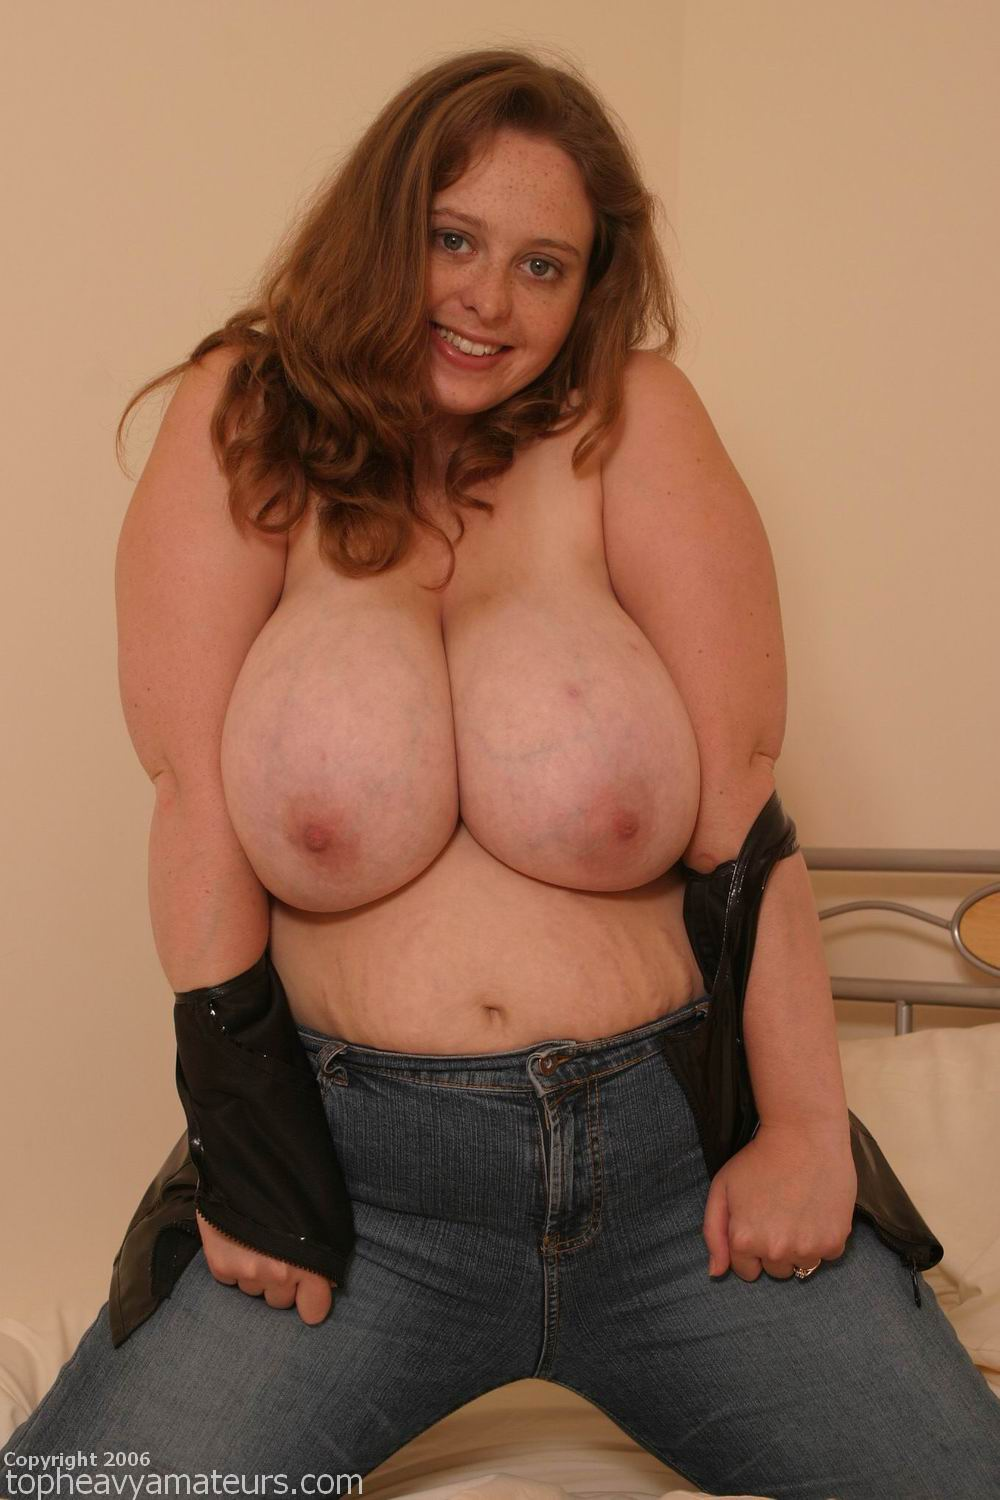 Huge bbw boobs topheavy amateurs